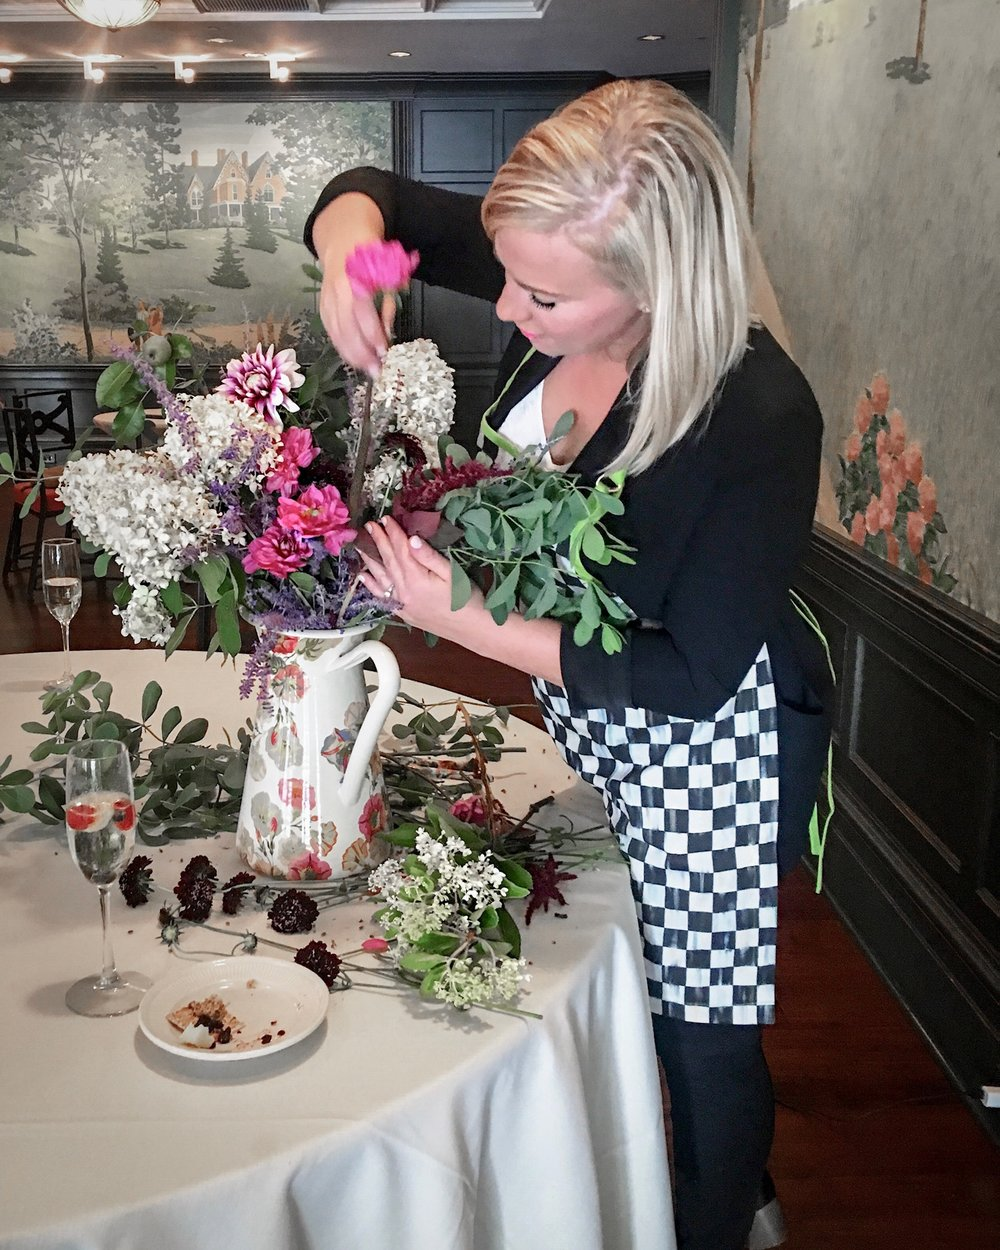 Susan is hard at work creating something beautiful (but secretly that comes really easy to her) at our floral arranging class!